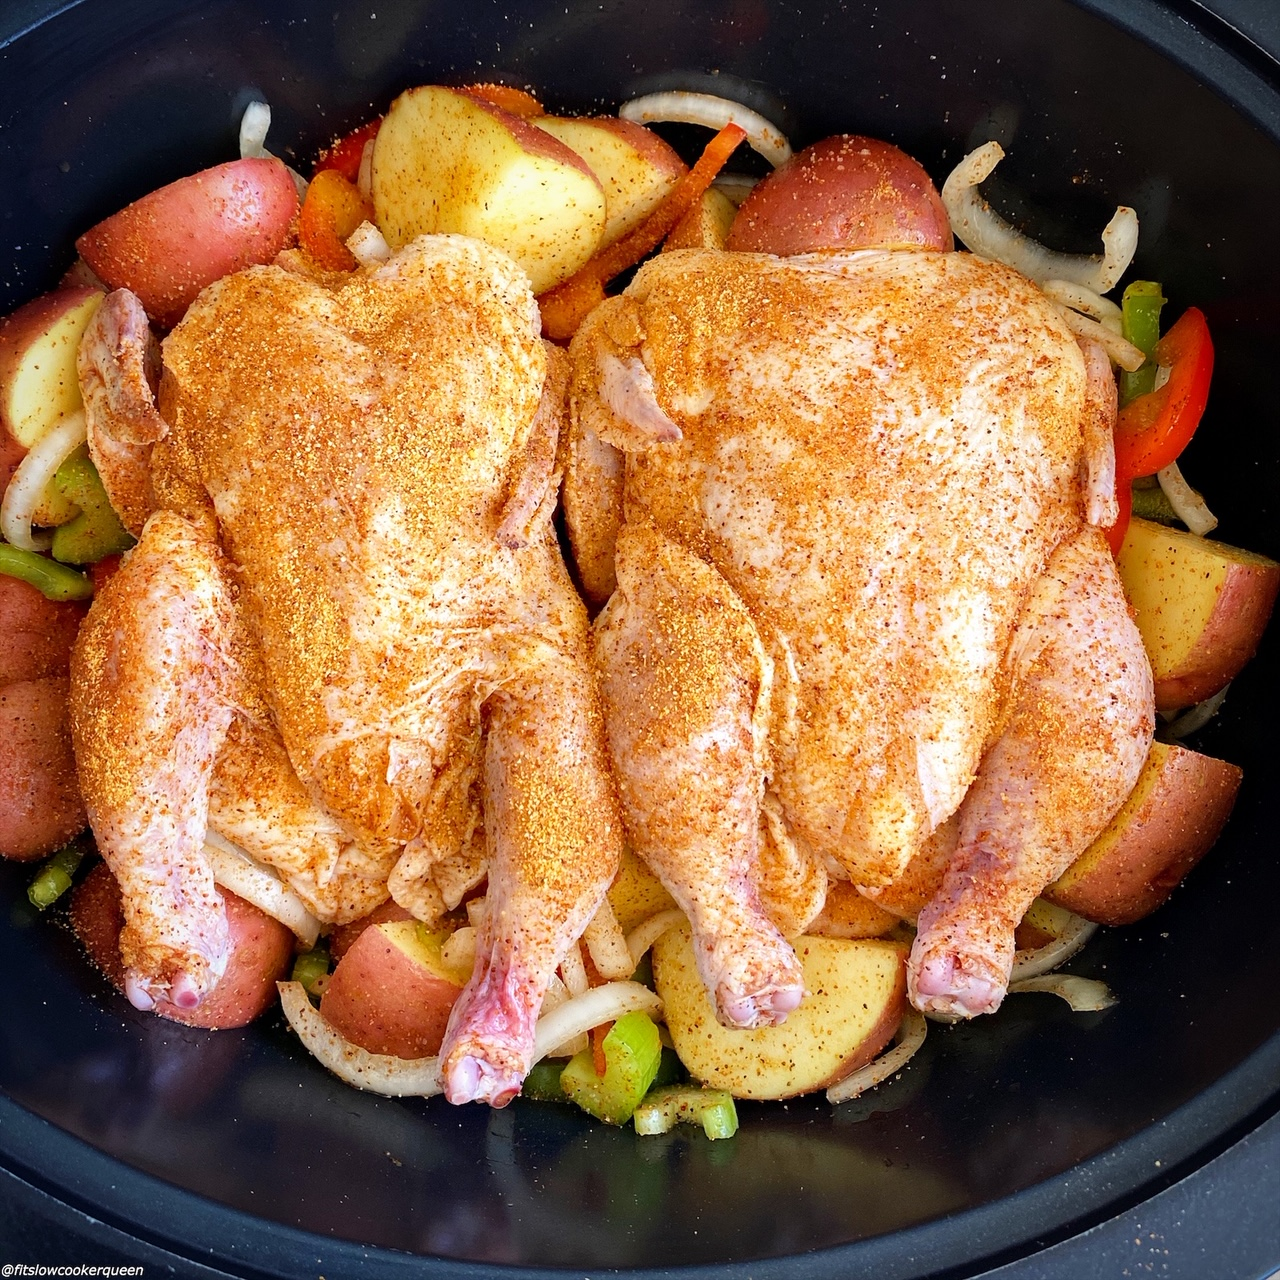 raw creole seasoned Cornish hens in the slow cooker on top of potatoes, bell peppers, celery, and onions in the slow cooker with Creole seasoning on top